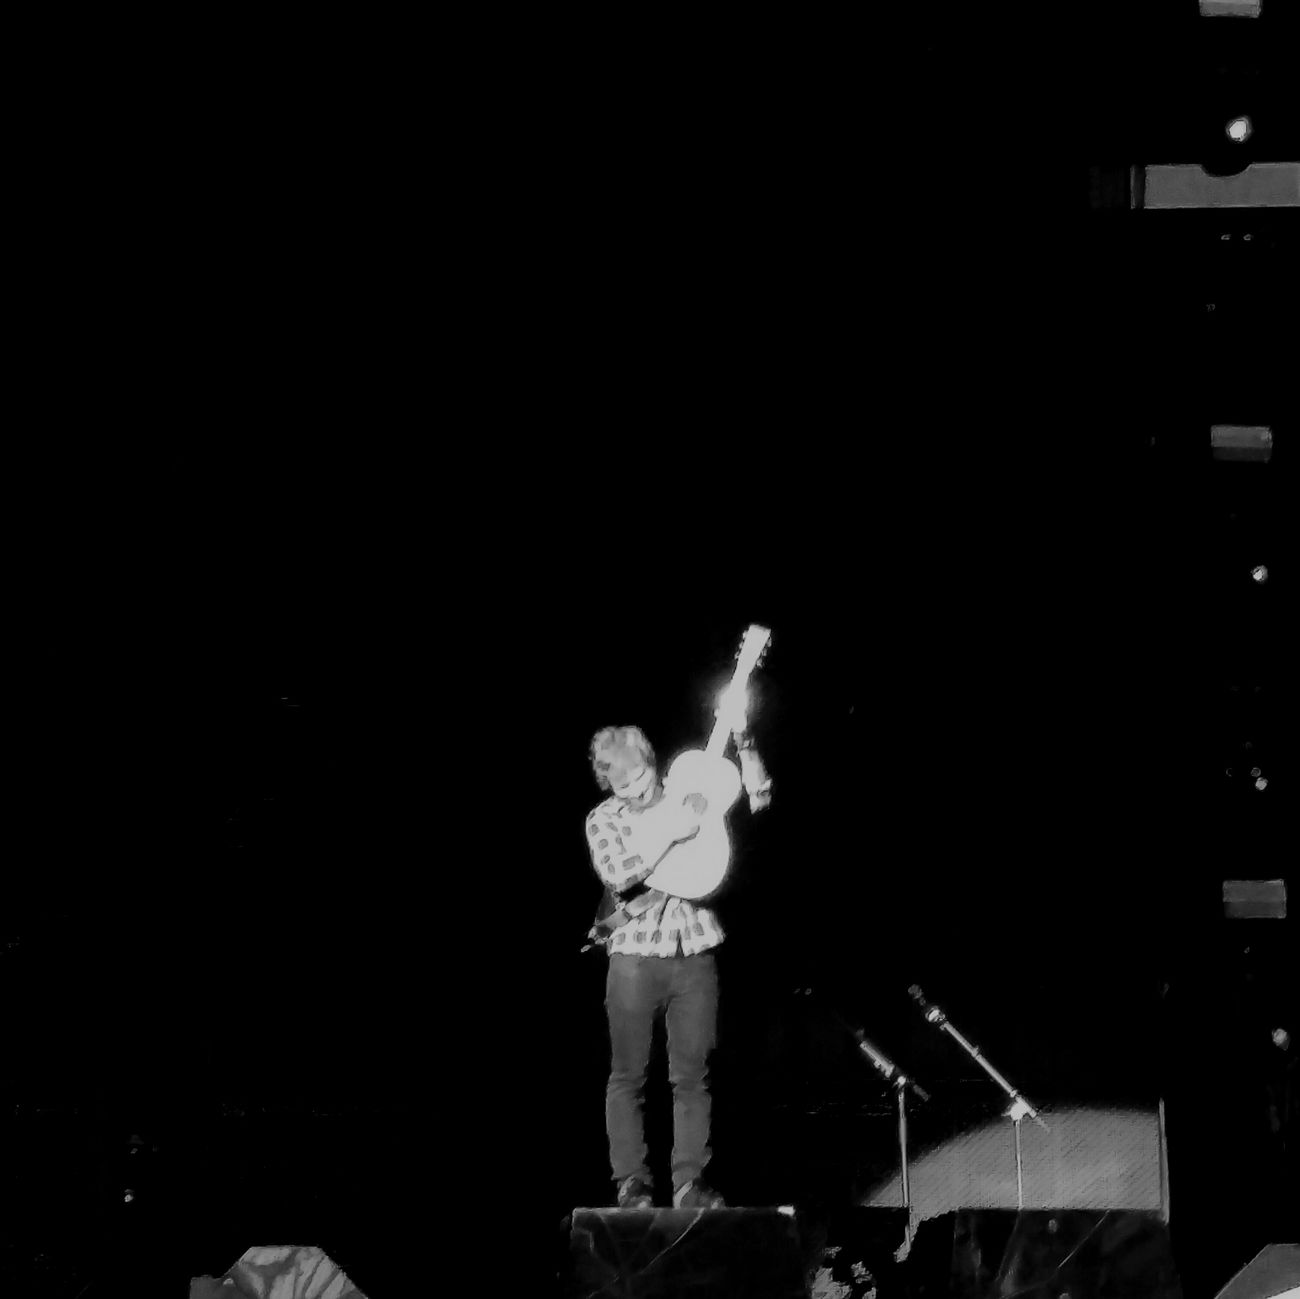 Edsheeranconcert Edatwembly Edsheeran Music Concert London Wembley Blackandwhite